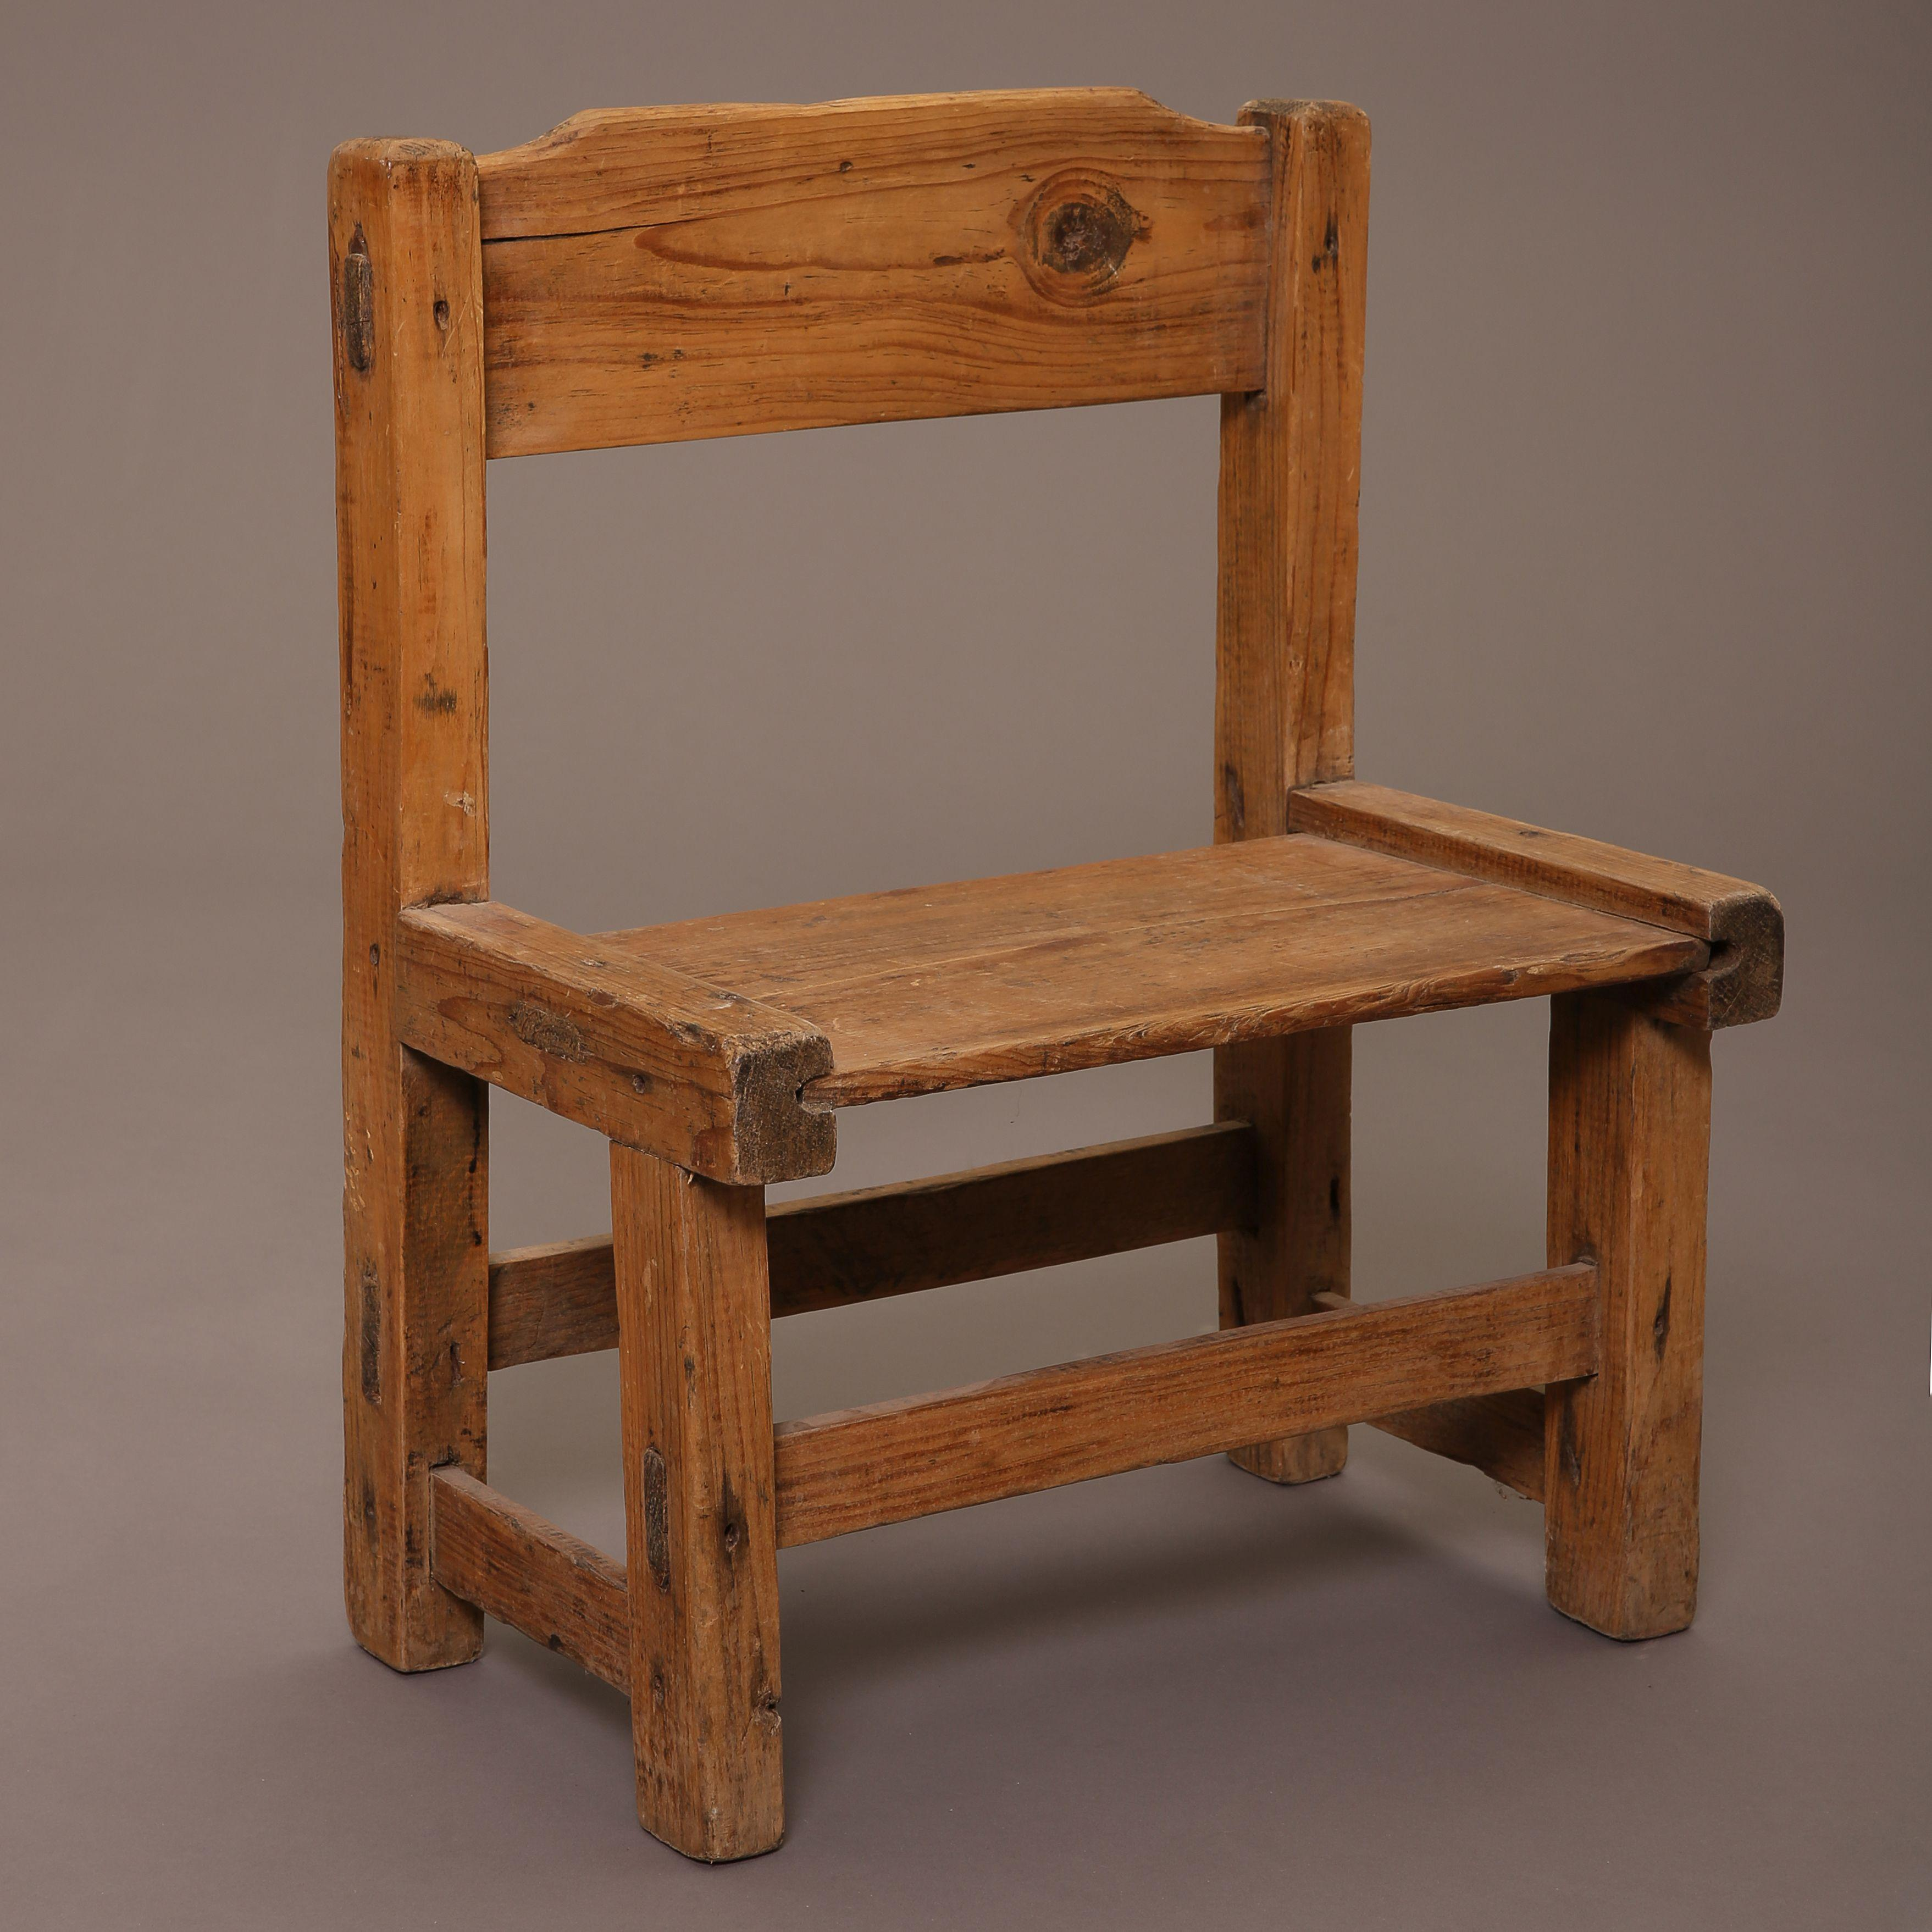 New Mexico, Group of Three Children's Chairs